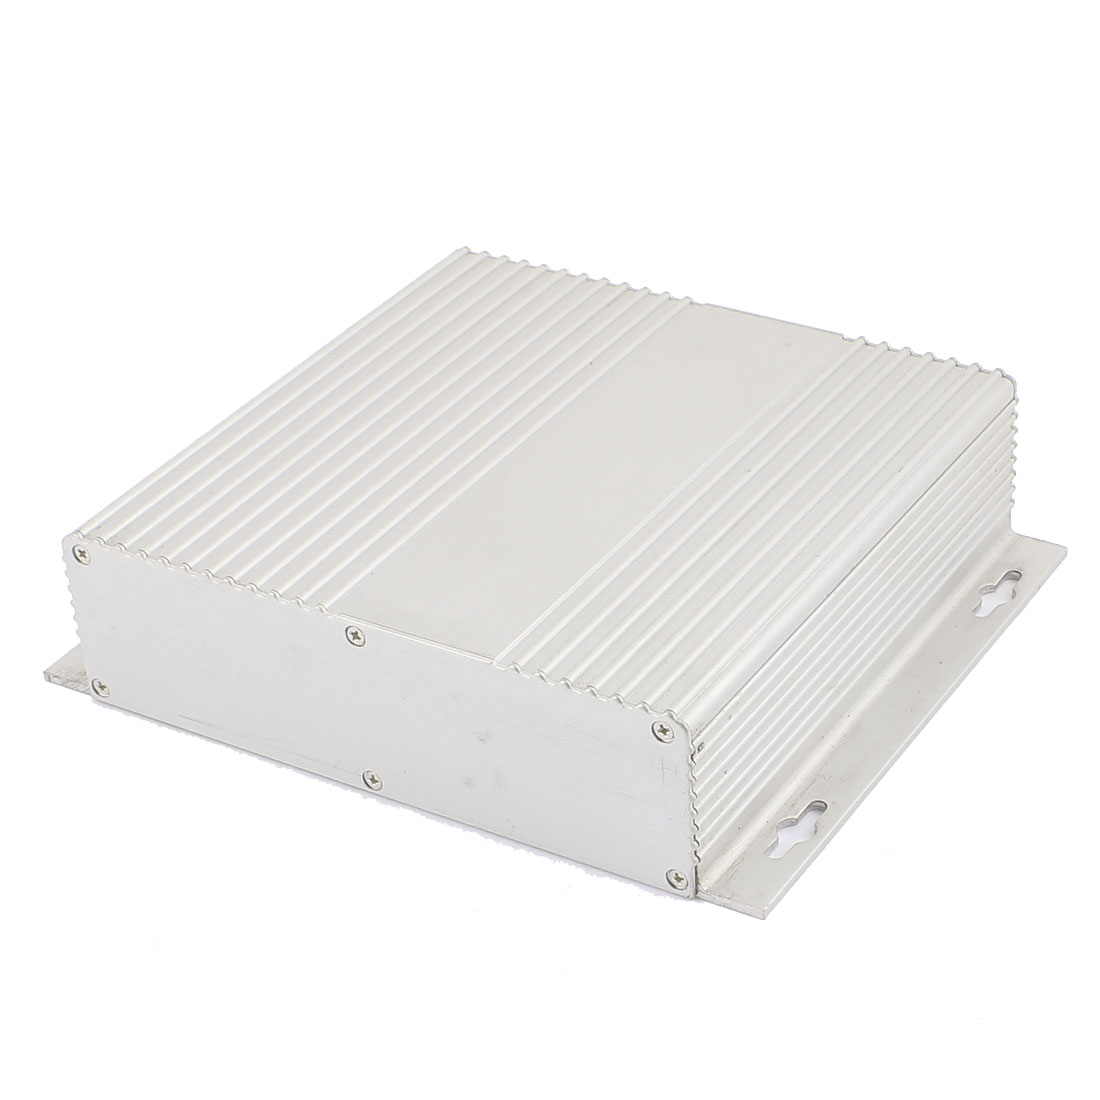 158 x 190 x 46mm Multi-purpose Electronic Extruded Aluminum Enclosure Silver Tone